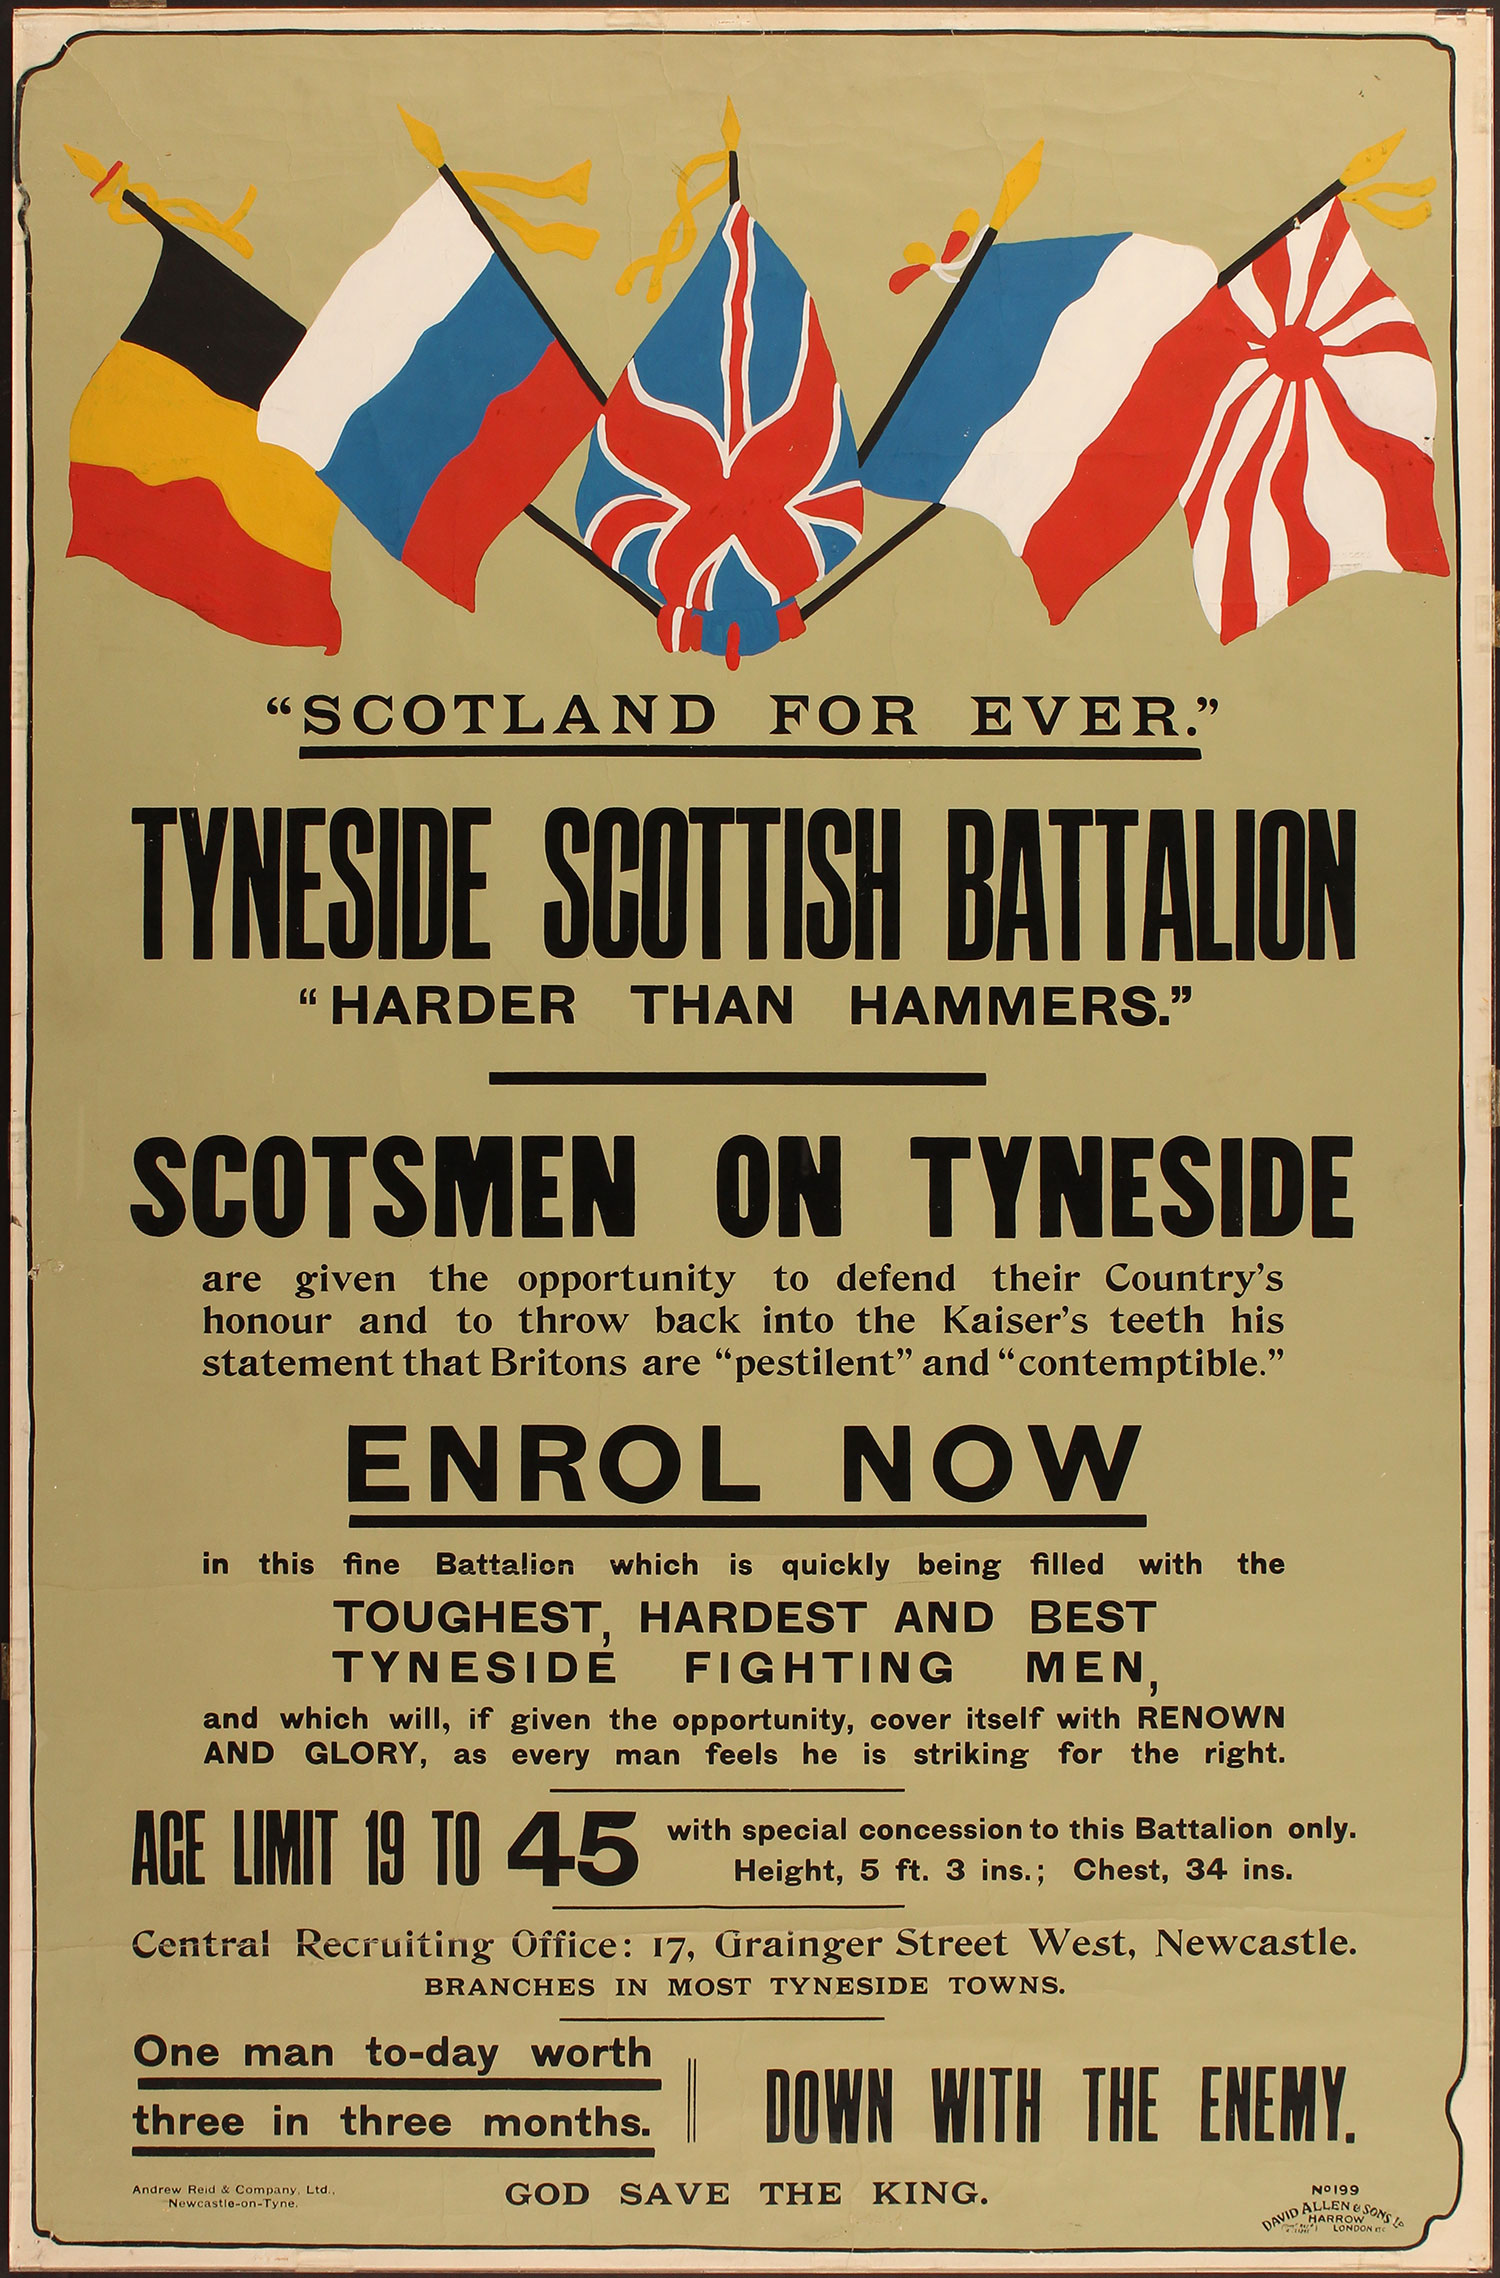 Tyneside Scottish Battalion recruitment poster courtesy of the Fusiliers Museum Northumberland